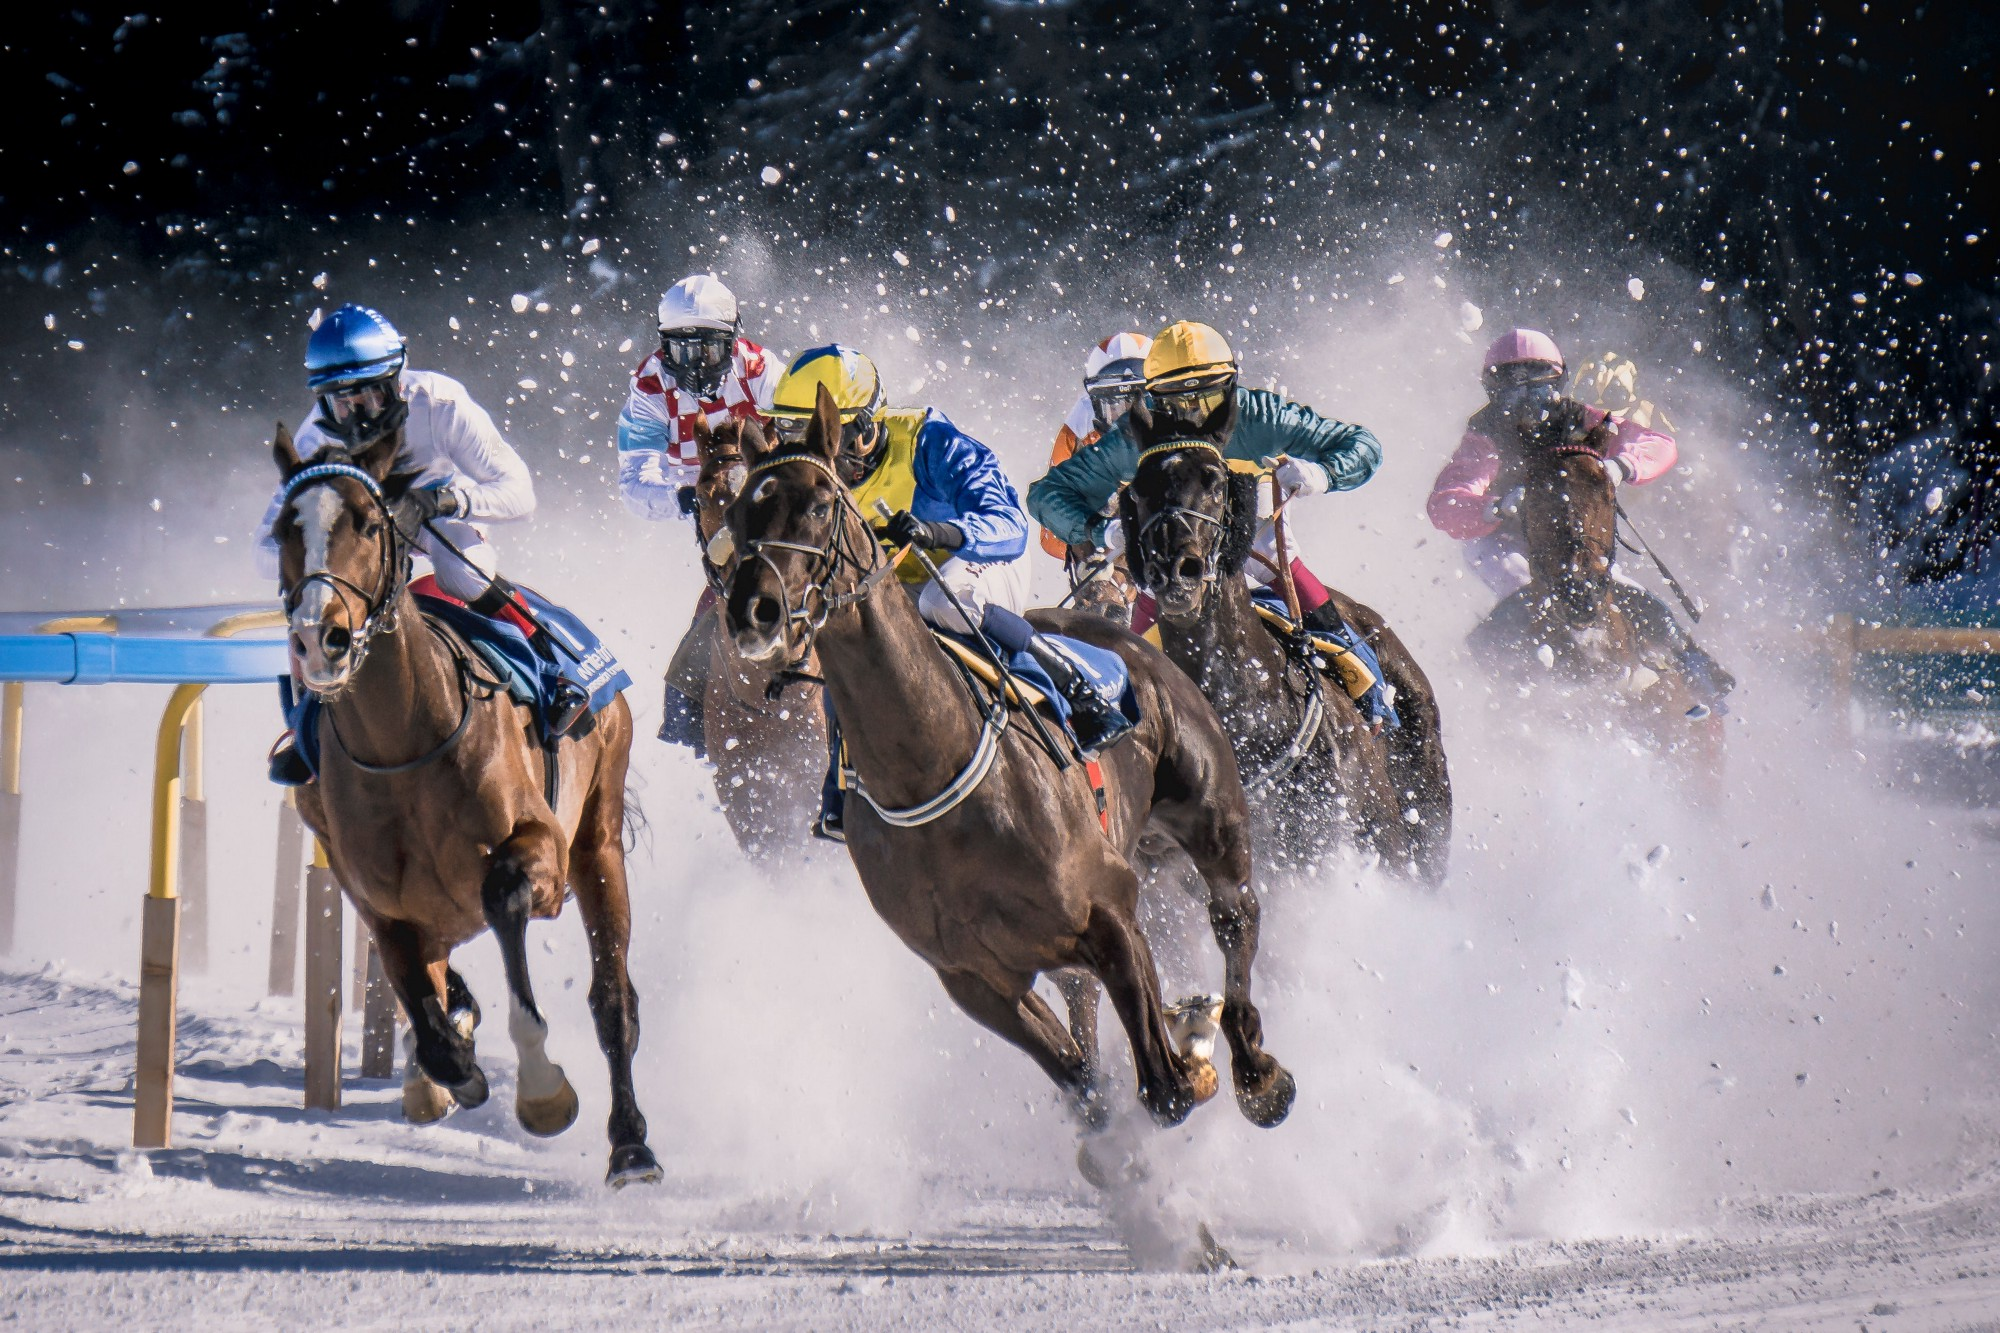 Horse racers coming around a bend, with snow flying up from the horses' hooves.